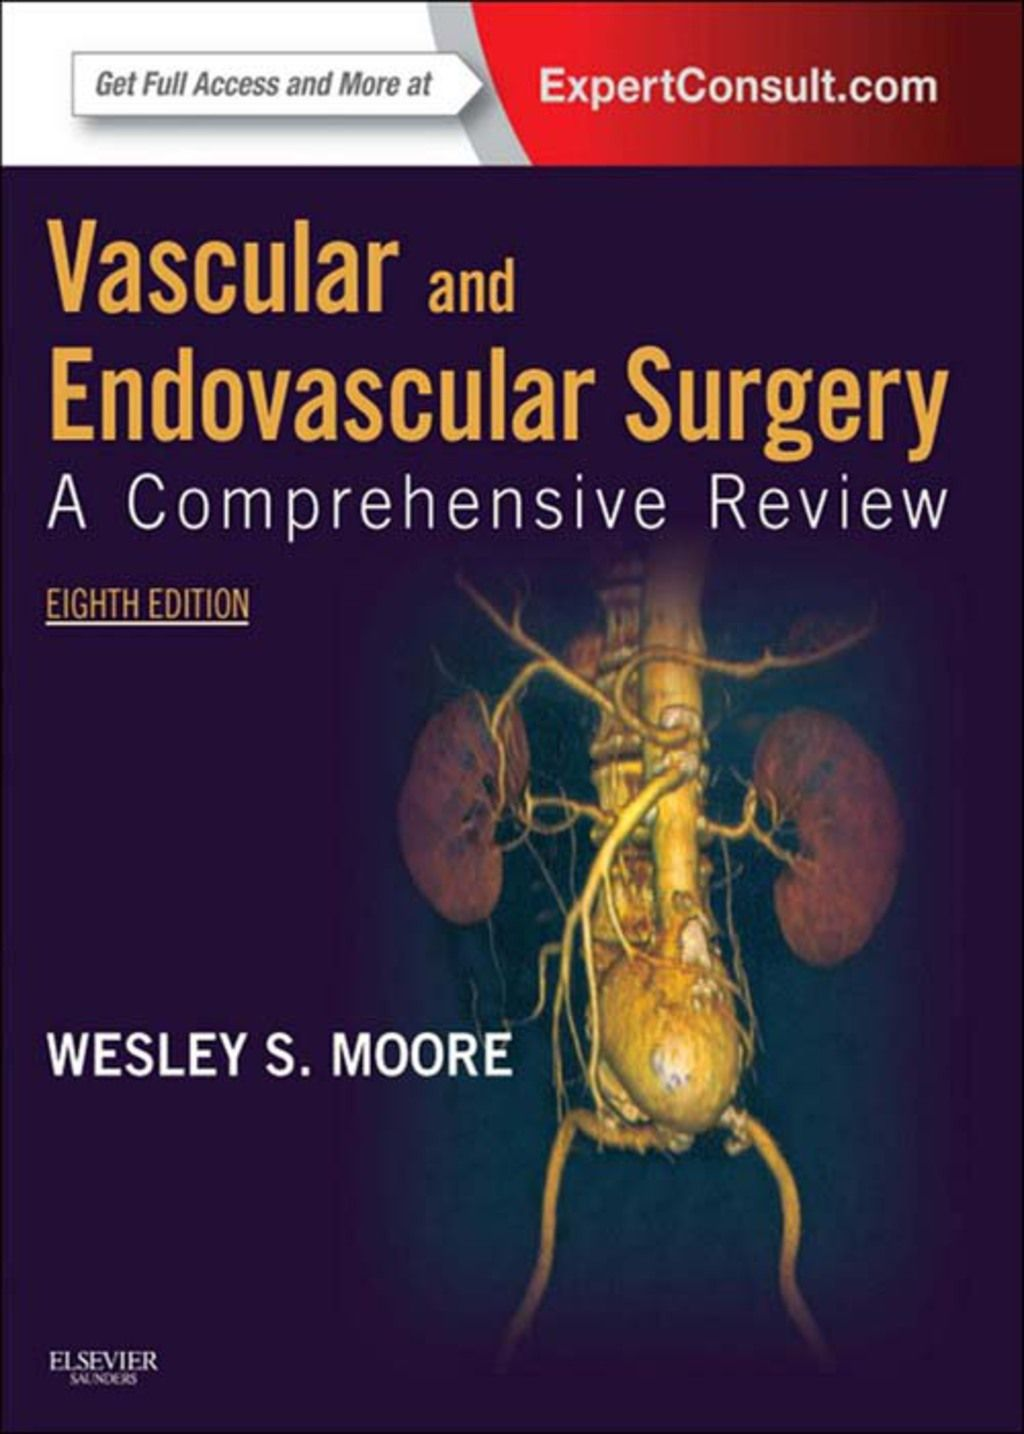 Vascular And Endovascular Surgery E Book Ebook Rental In